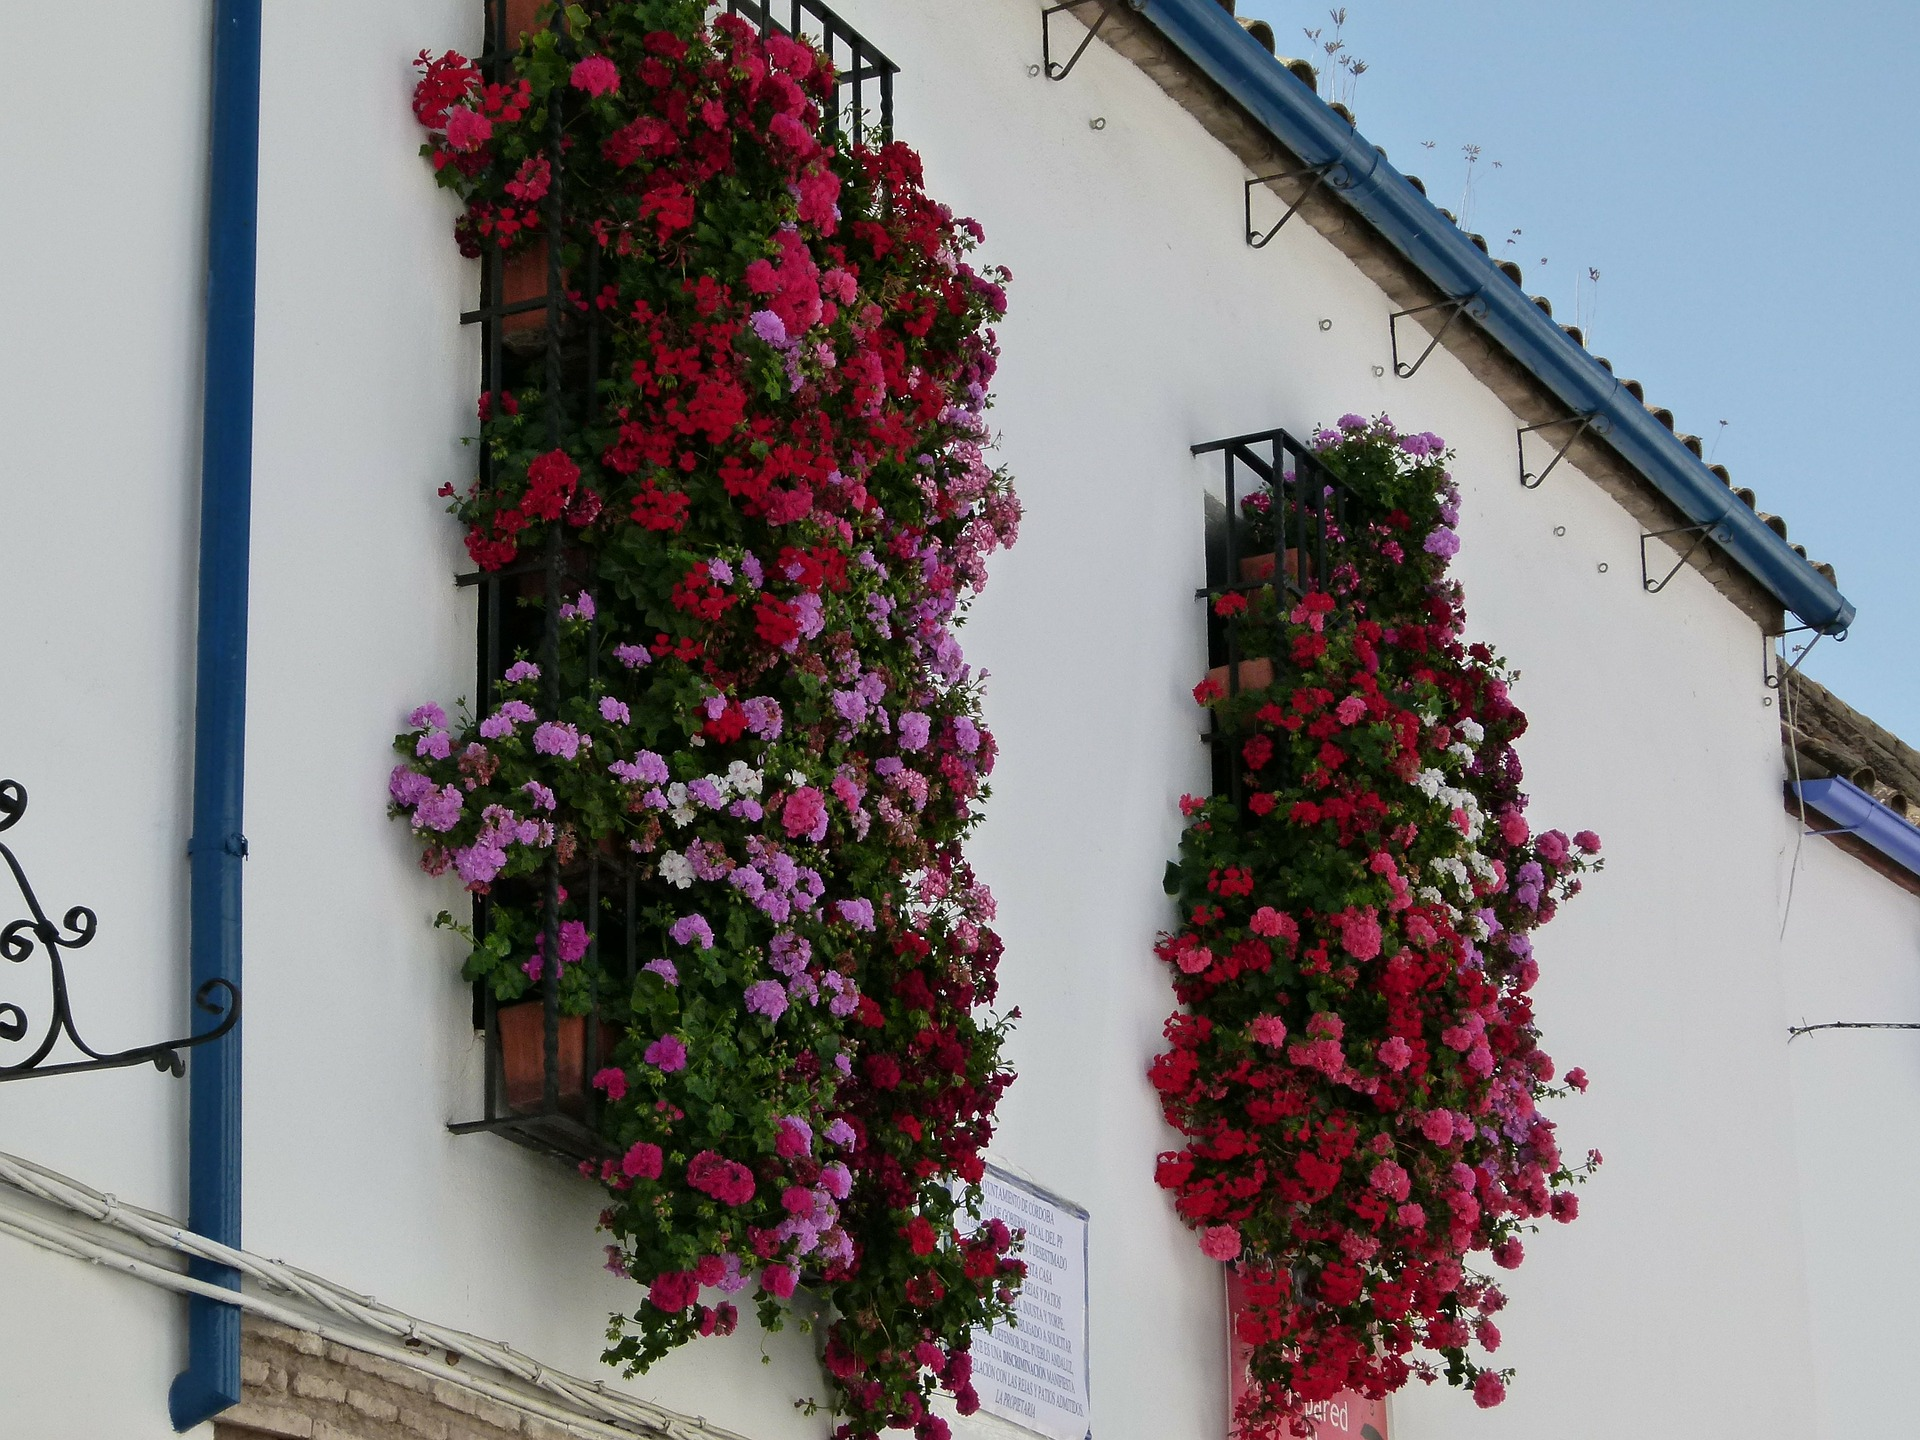 Flowers in the Old Town of Cordoba